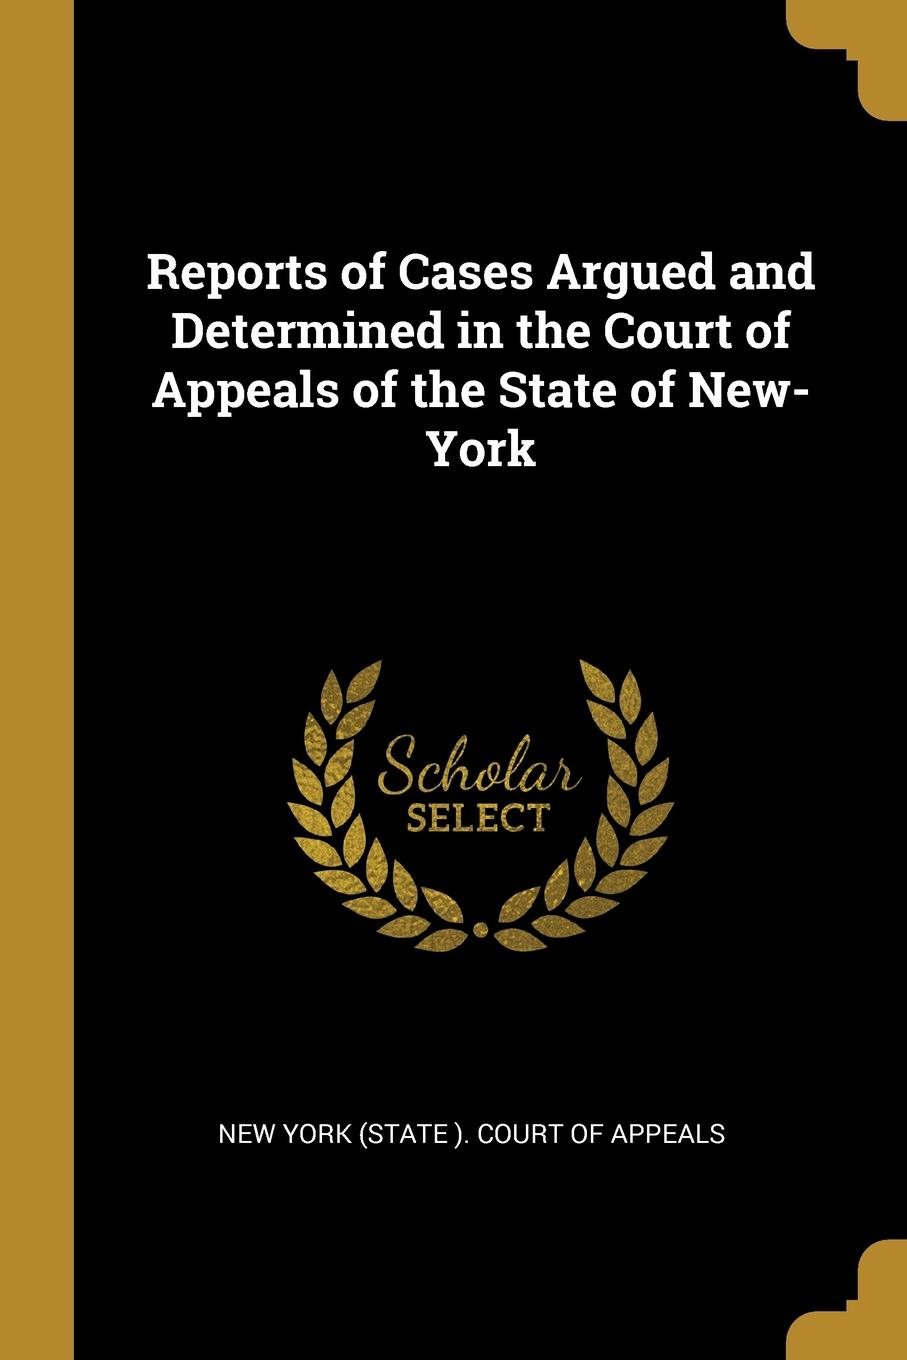 New York (State ). Court of Appeals Reports of Cases Argued and Determined in the Court of Appeals of the State of New-York